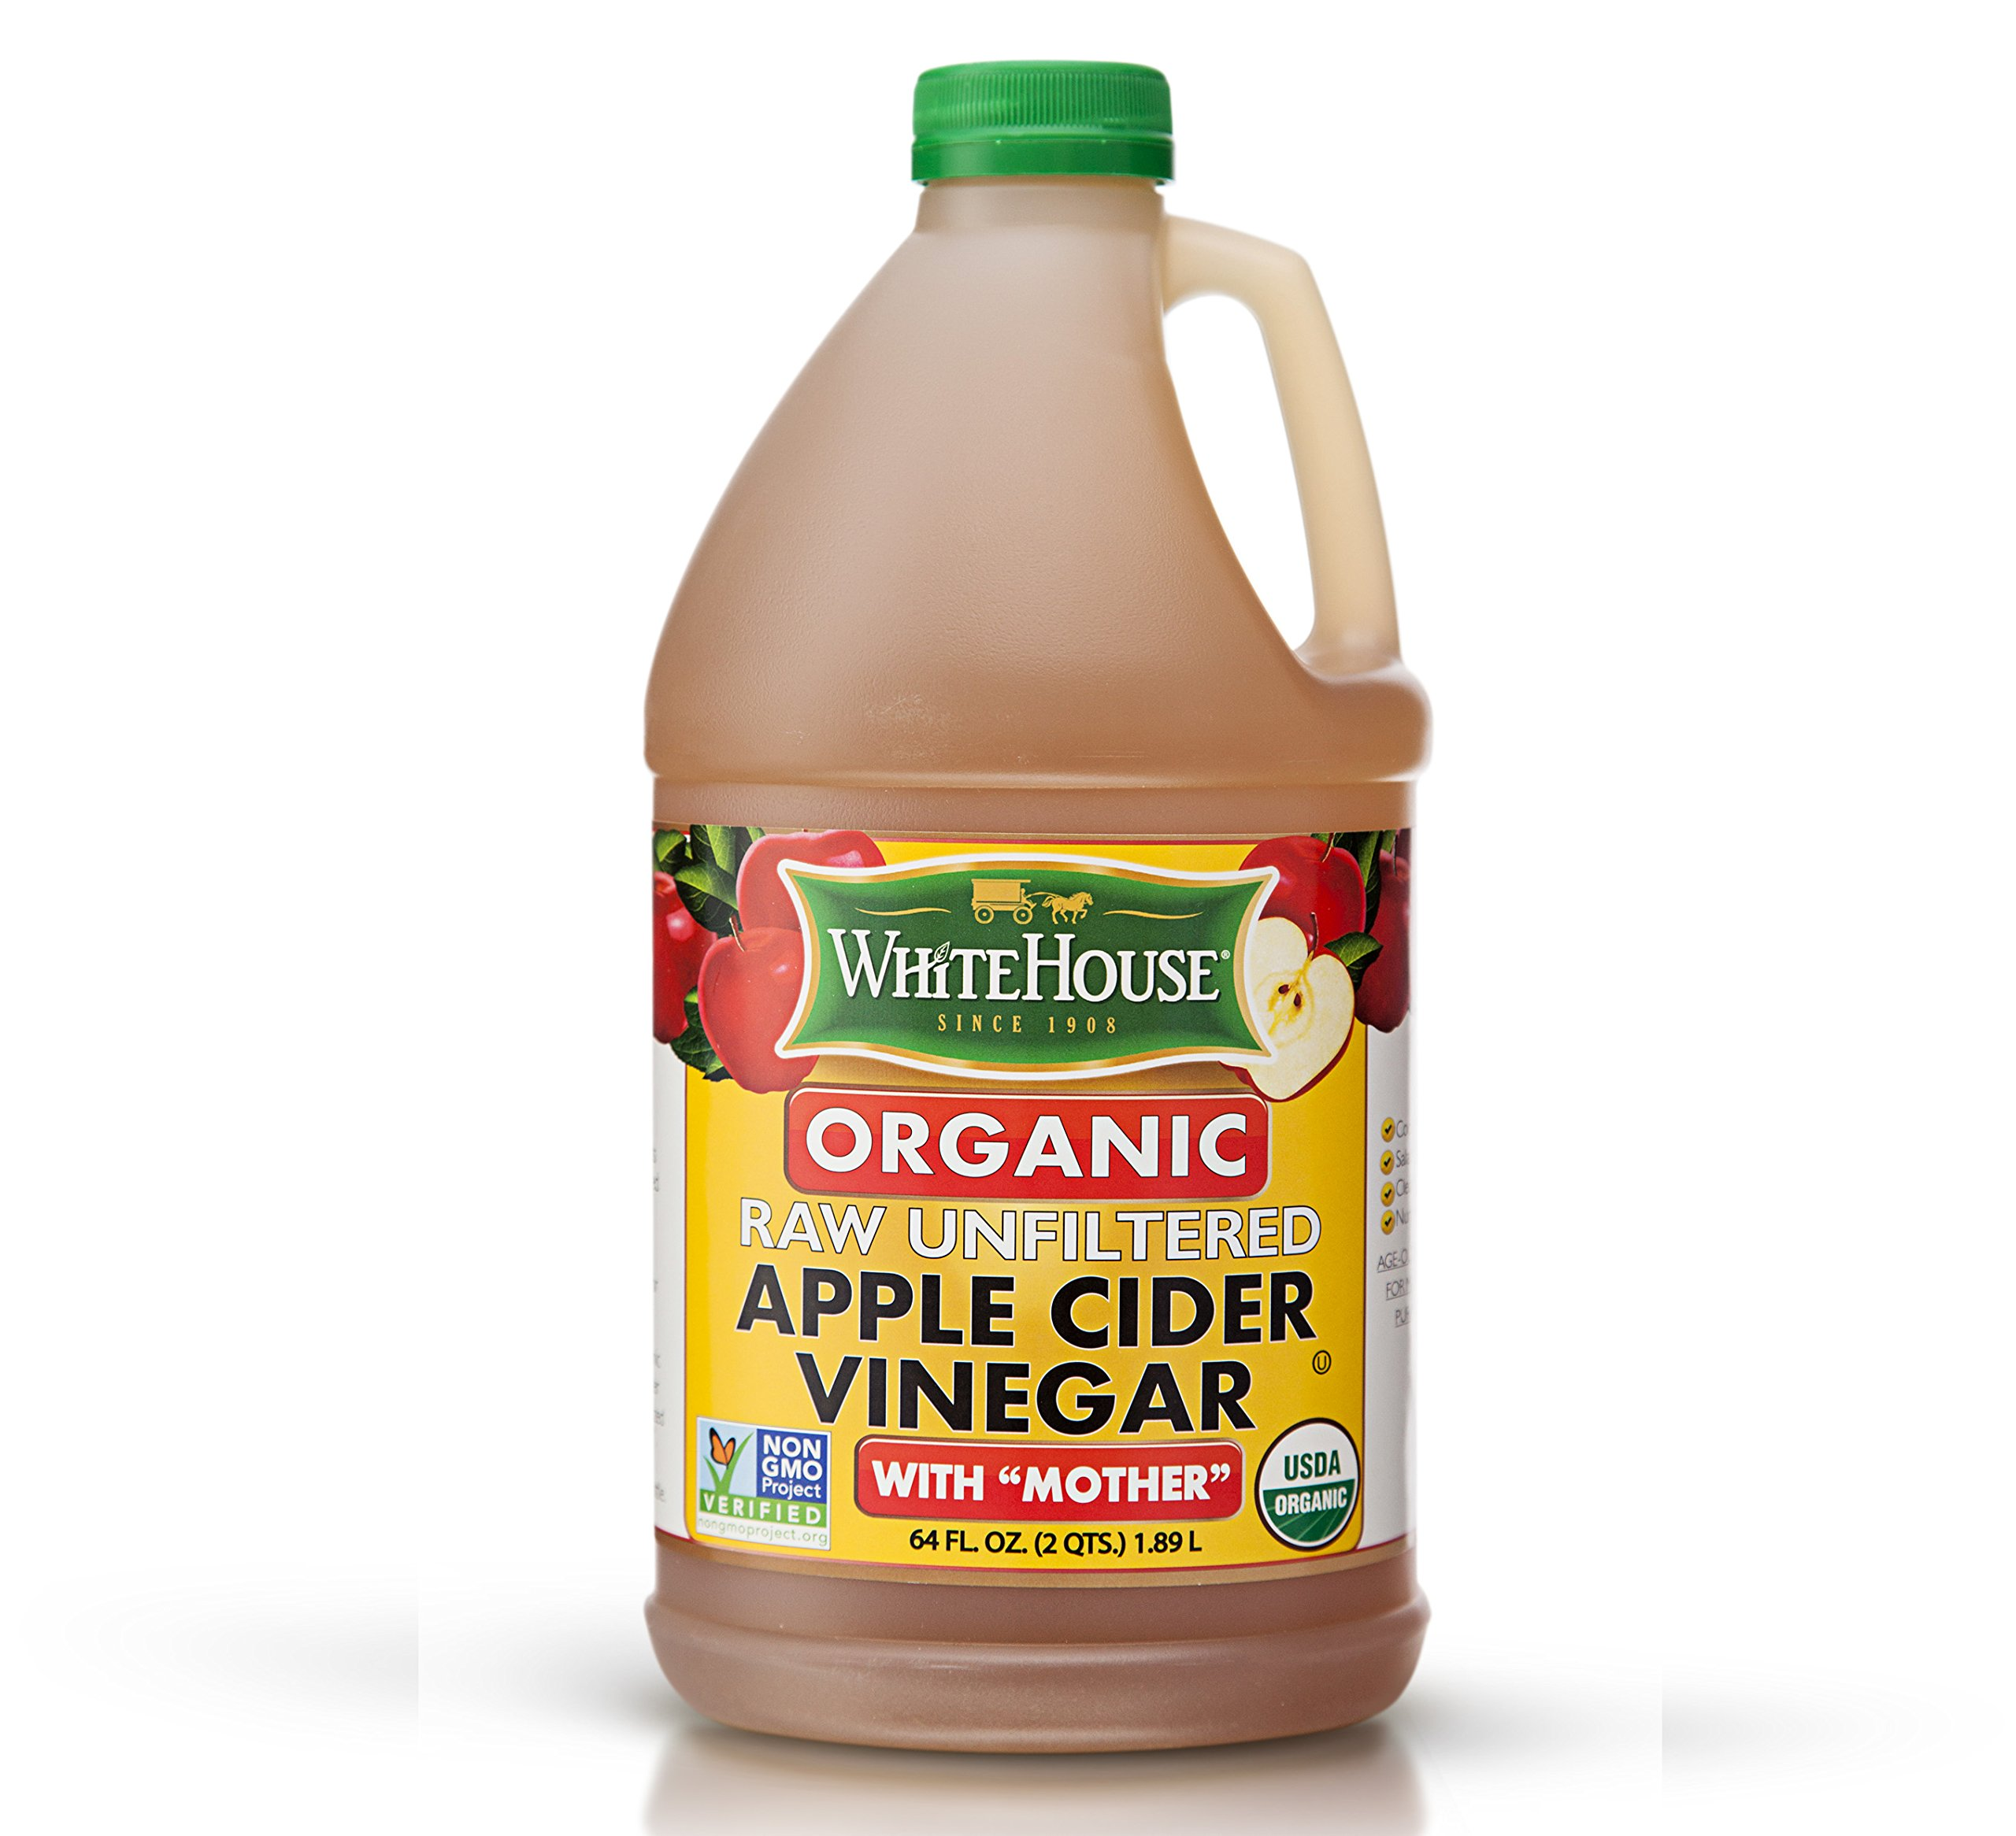 White House Organic Raw Unfiltered Apple Cider Vinegar (64oz) by White House